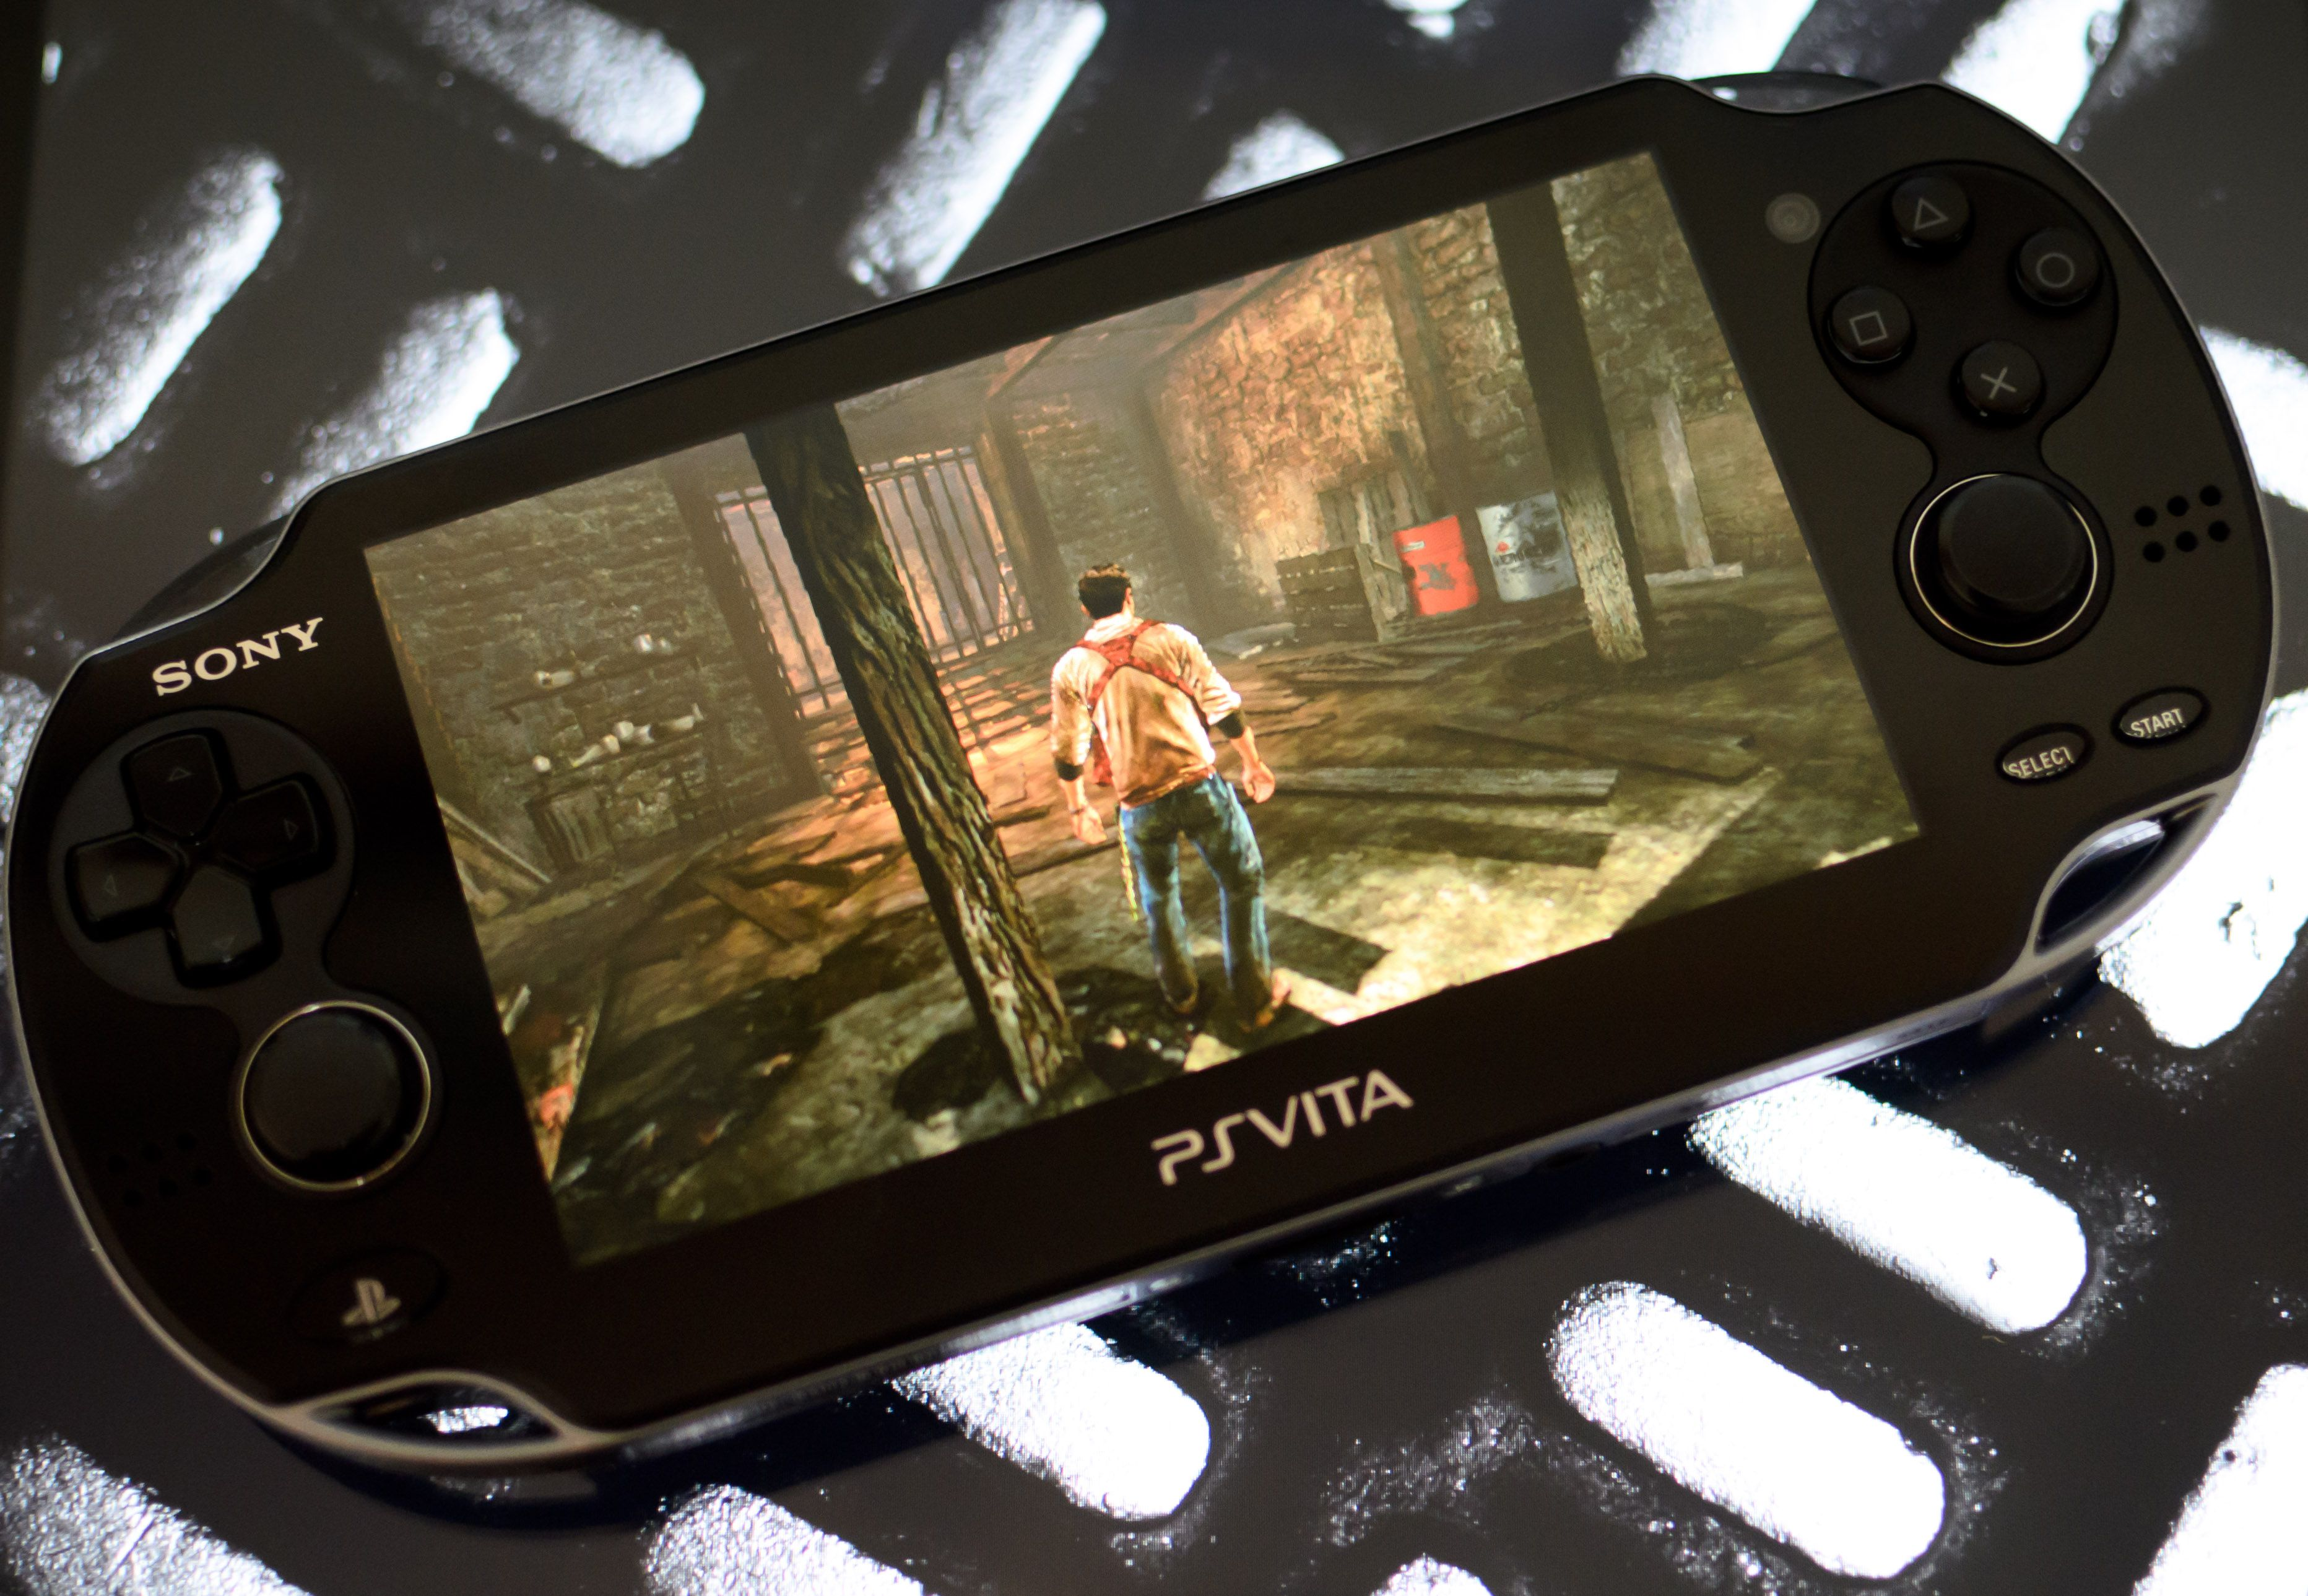 Remote Play on the PS Vita (Control Your PS3)